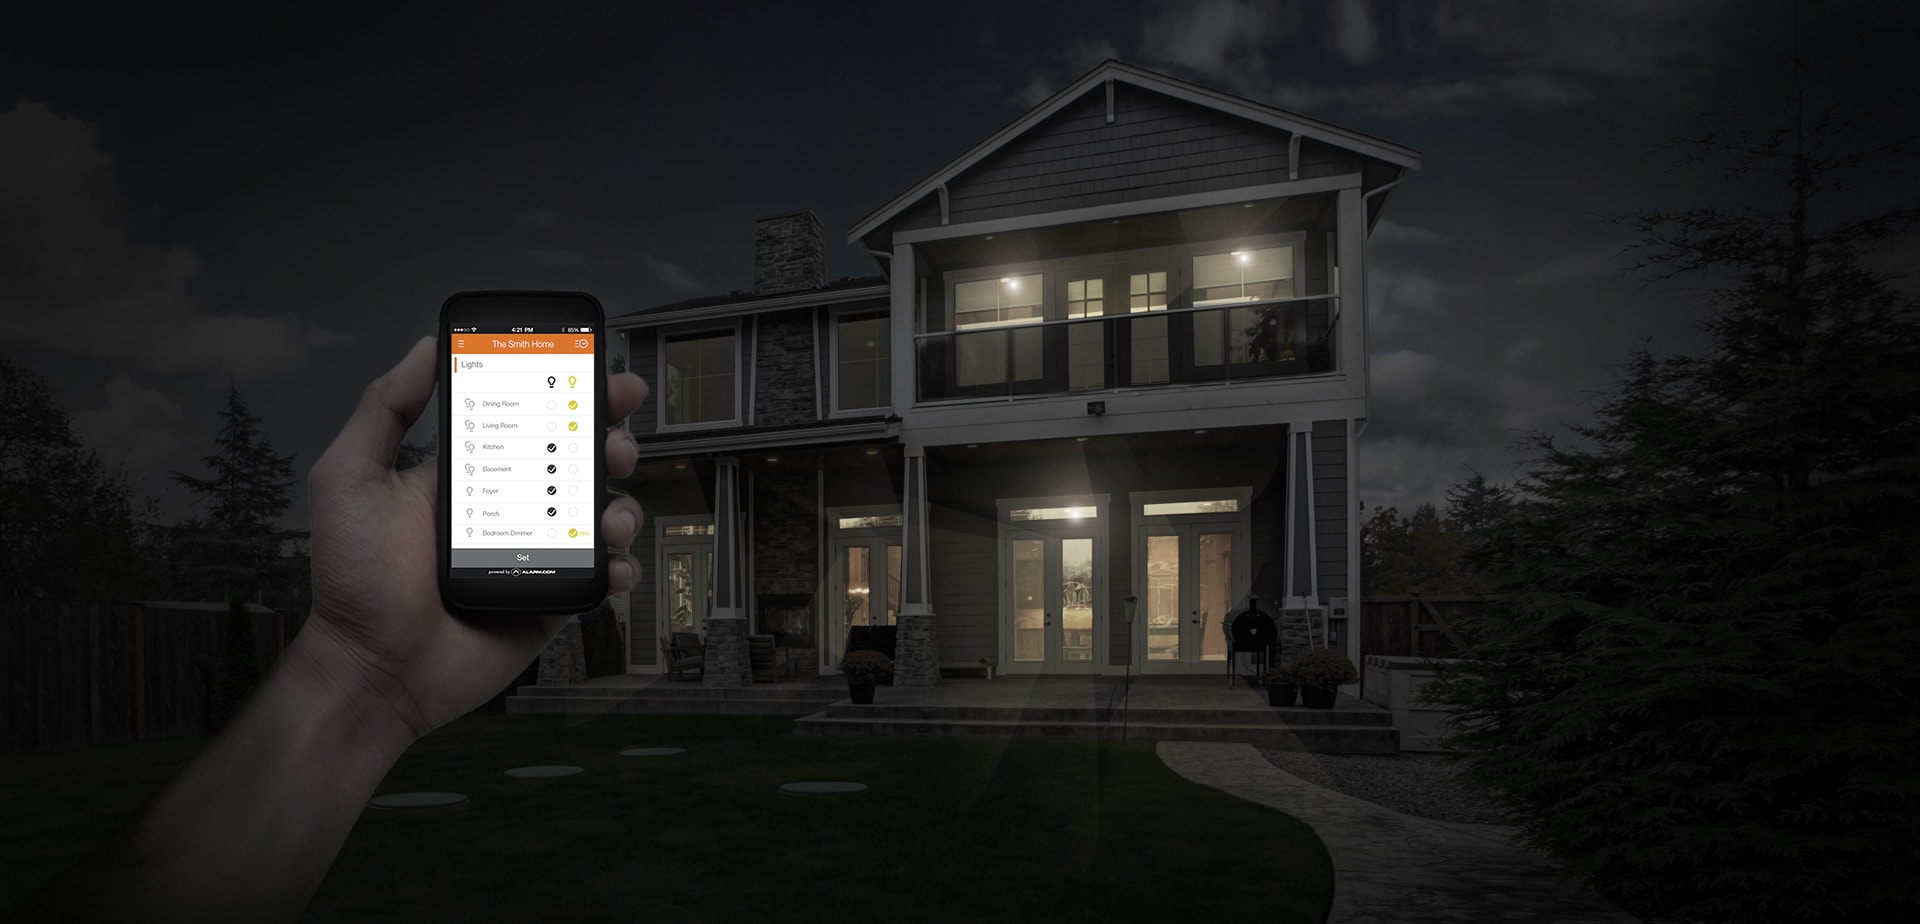 Home Automation for Safe and Peaceful Living